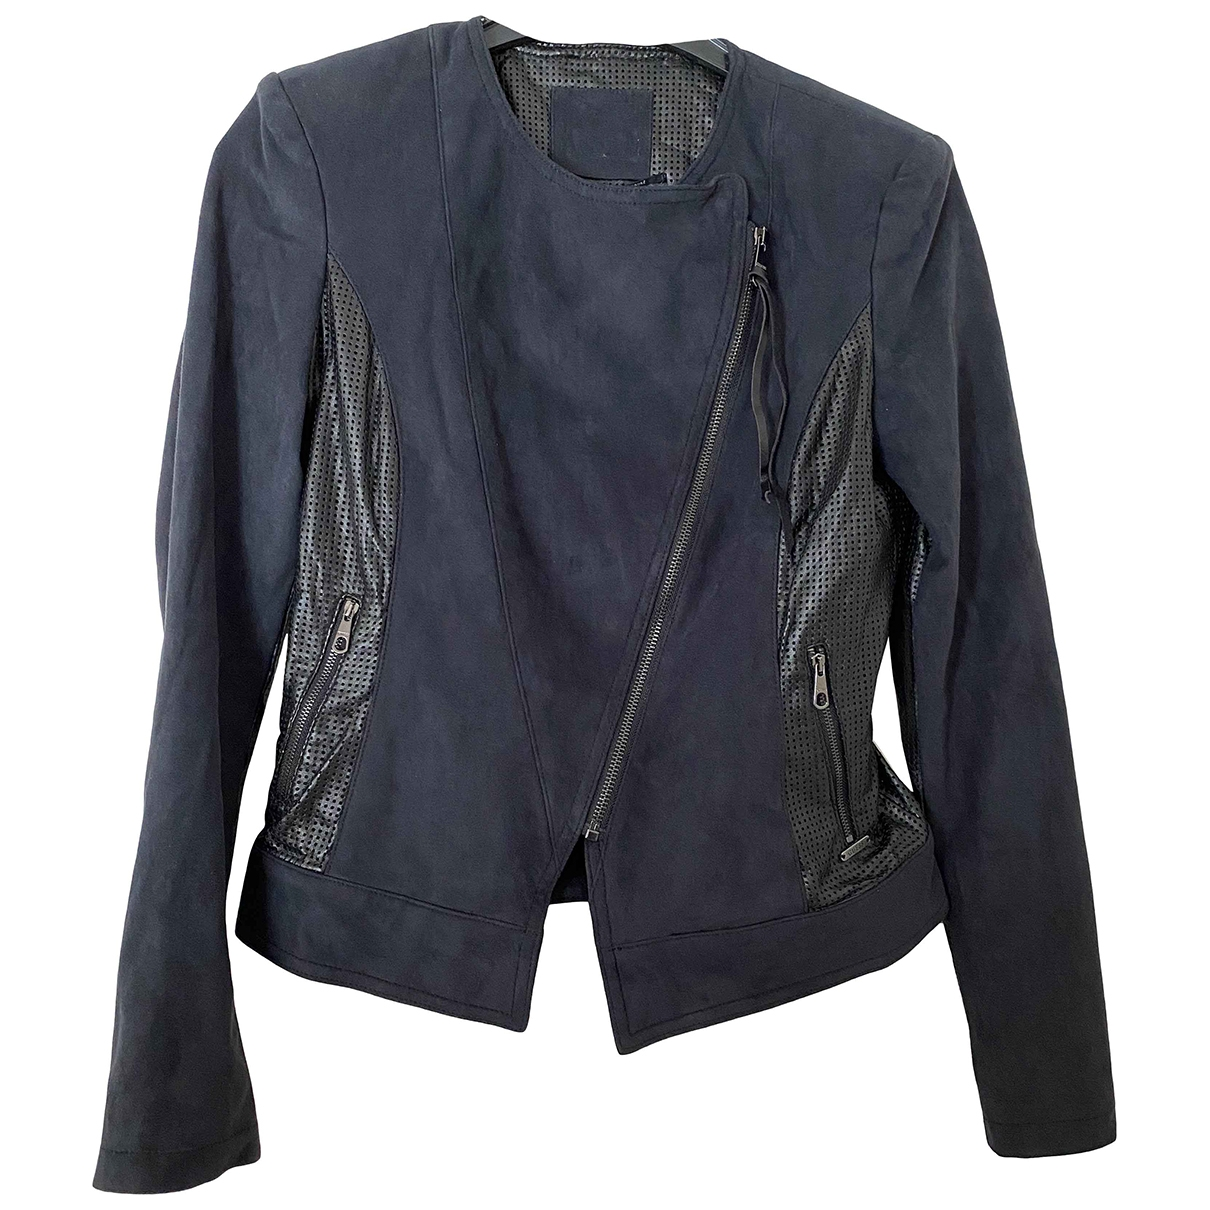 Guess \N Jacke in  Bunt Polyester